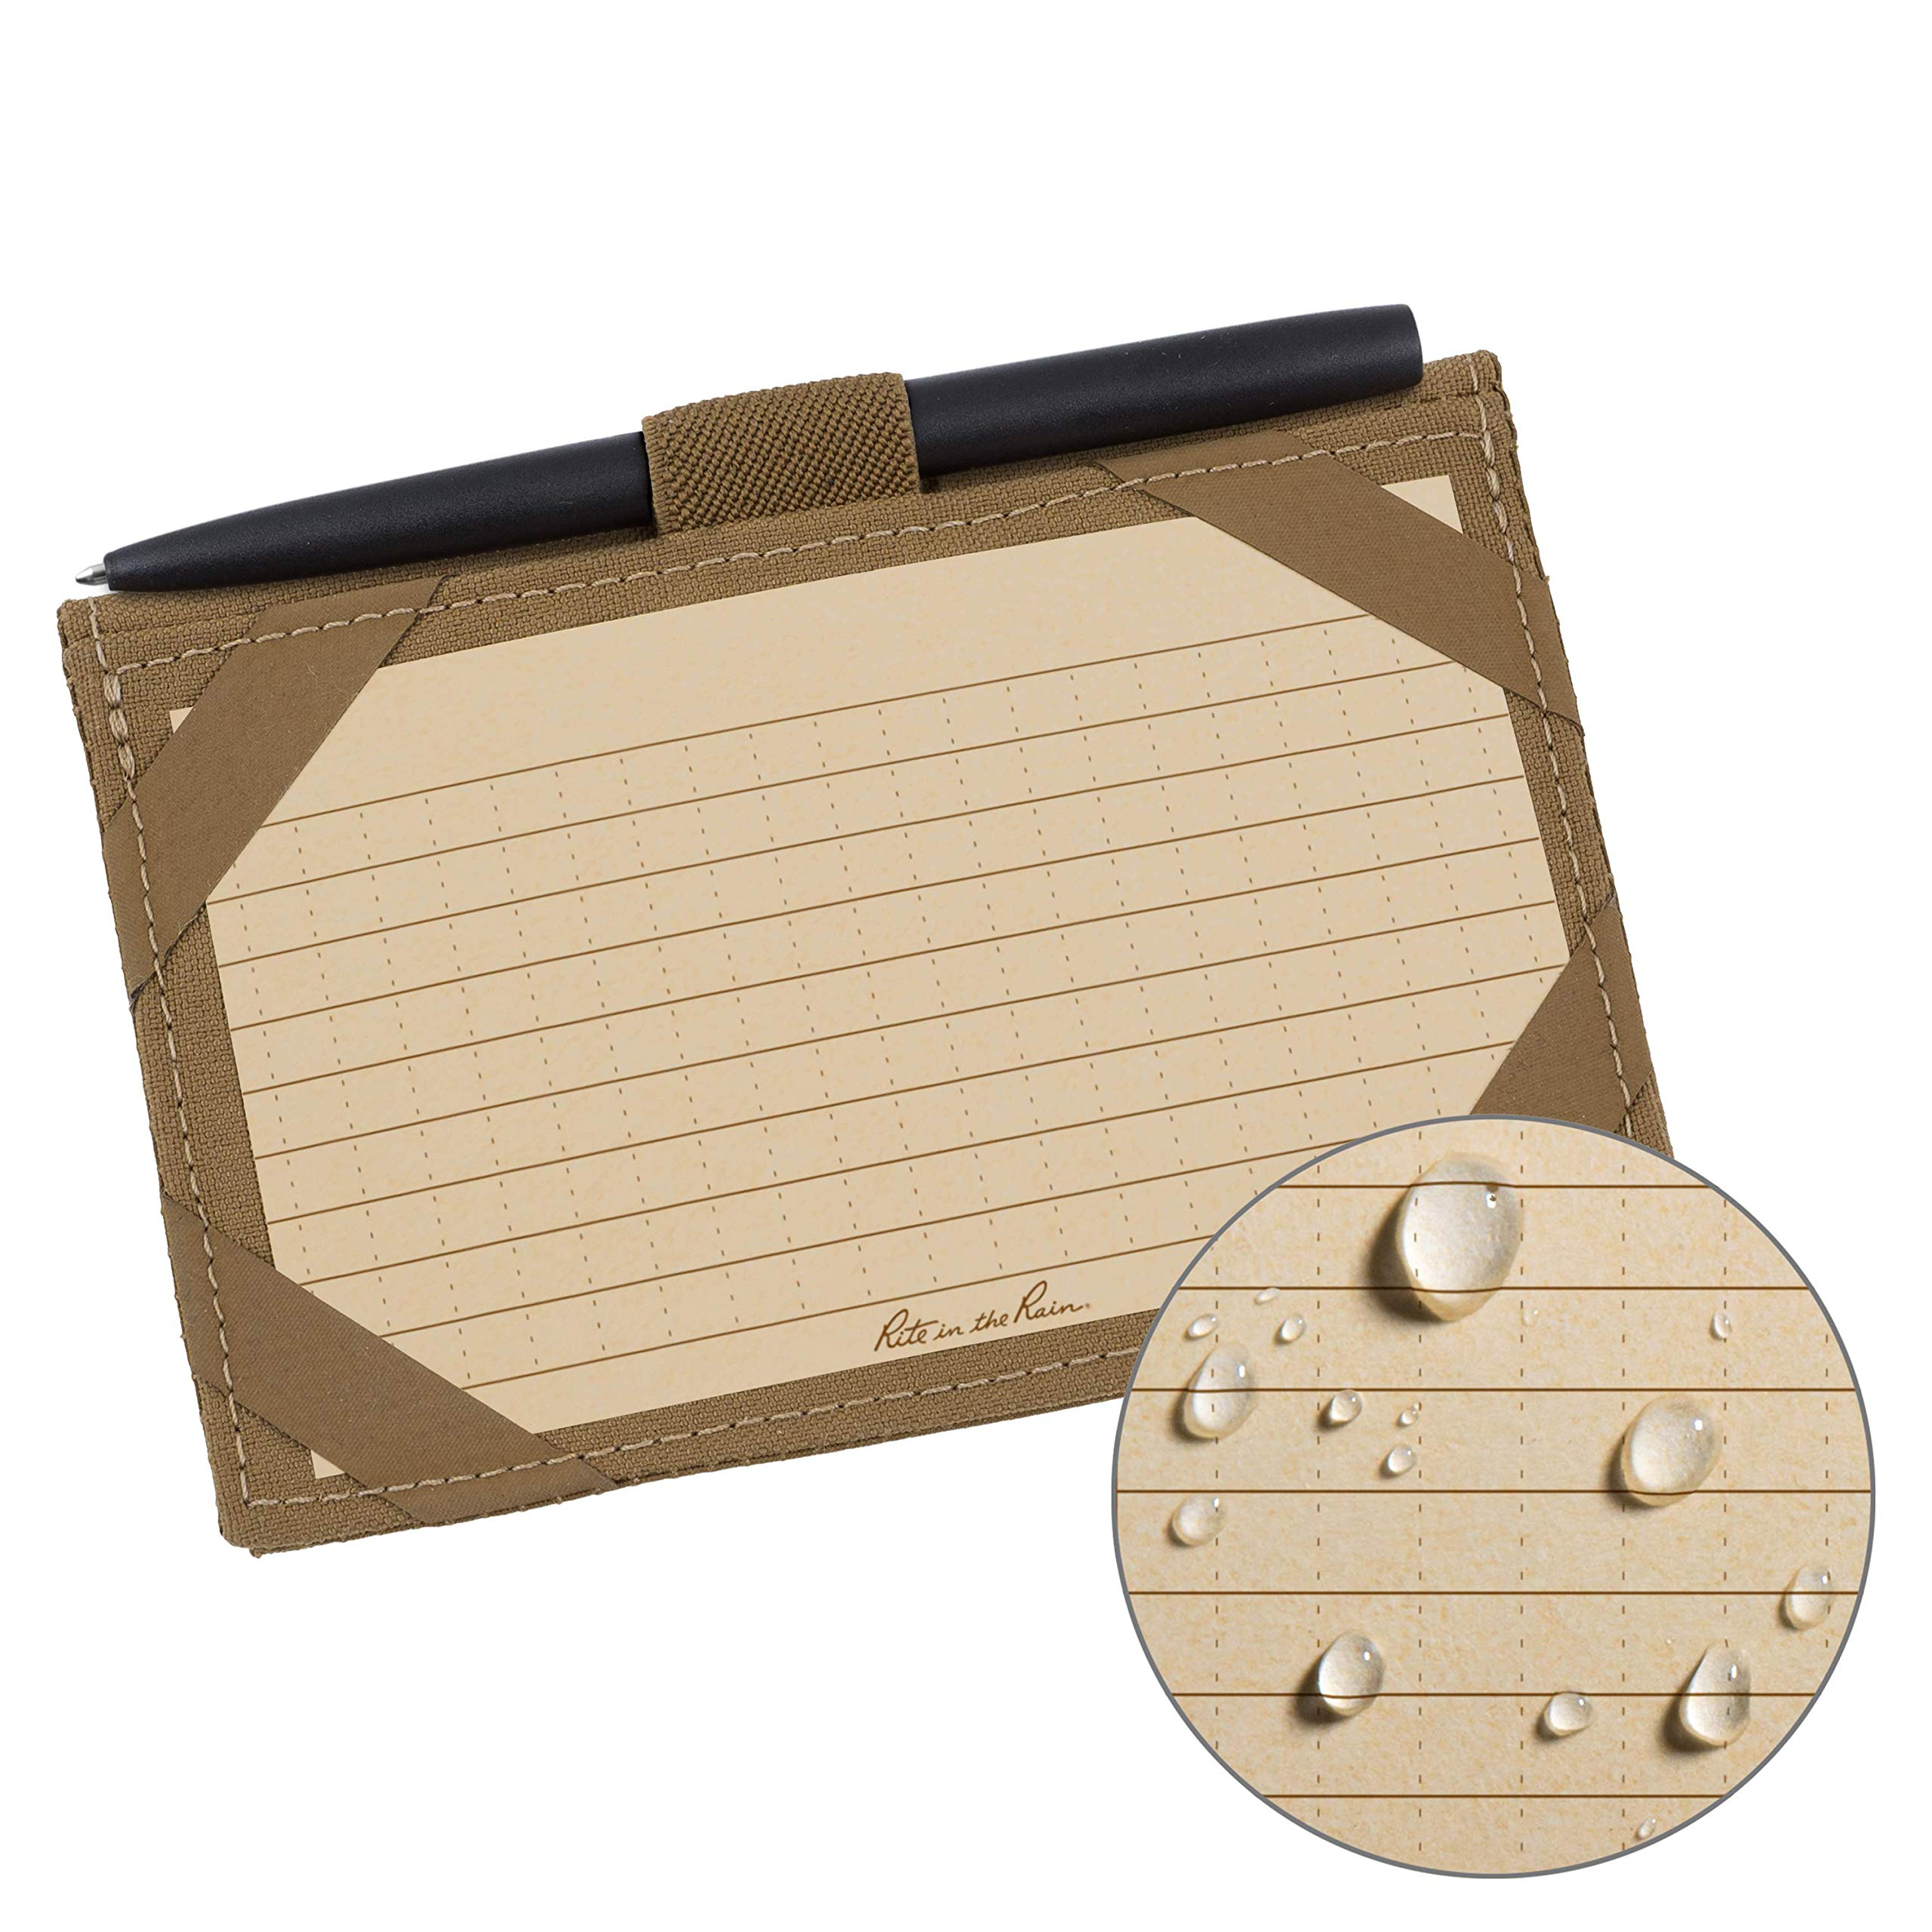 """Rite in the Rain Weatherproof Index Card Kit: Tan CORDURA Fabric Cover, 100 Tan 3"""" x 5"""" Index Cards, and an Weatherproof Pen (No. 991T-KIT)"""